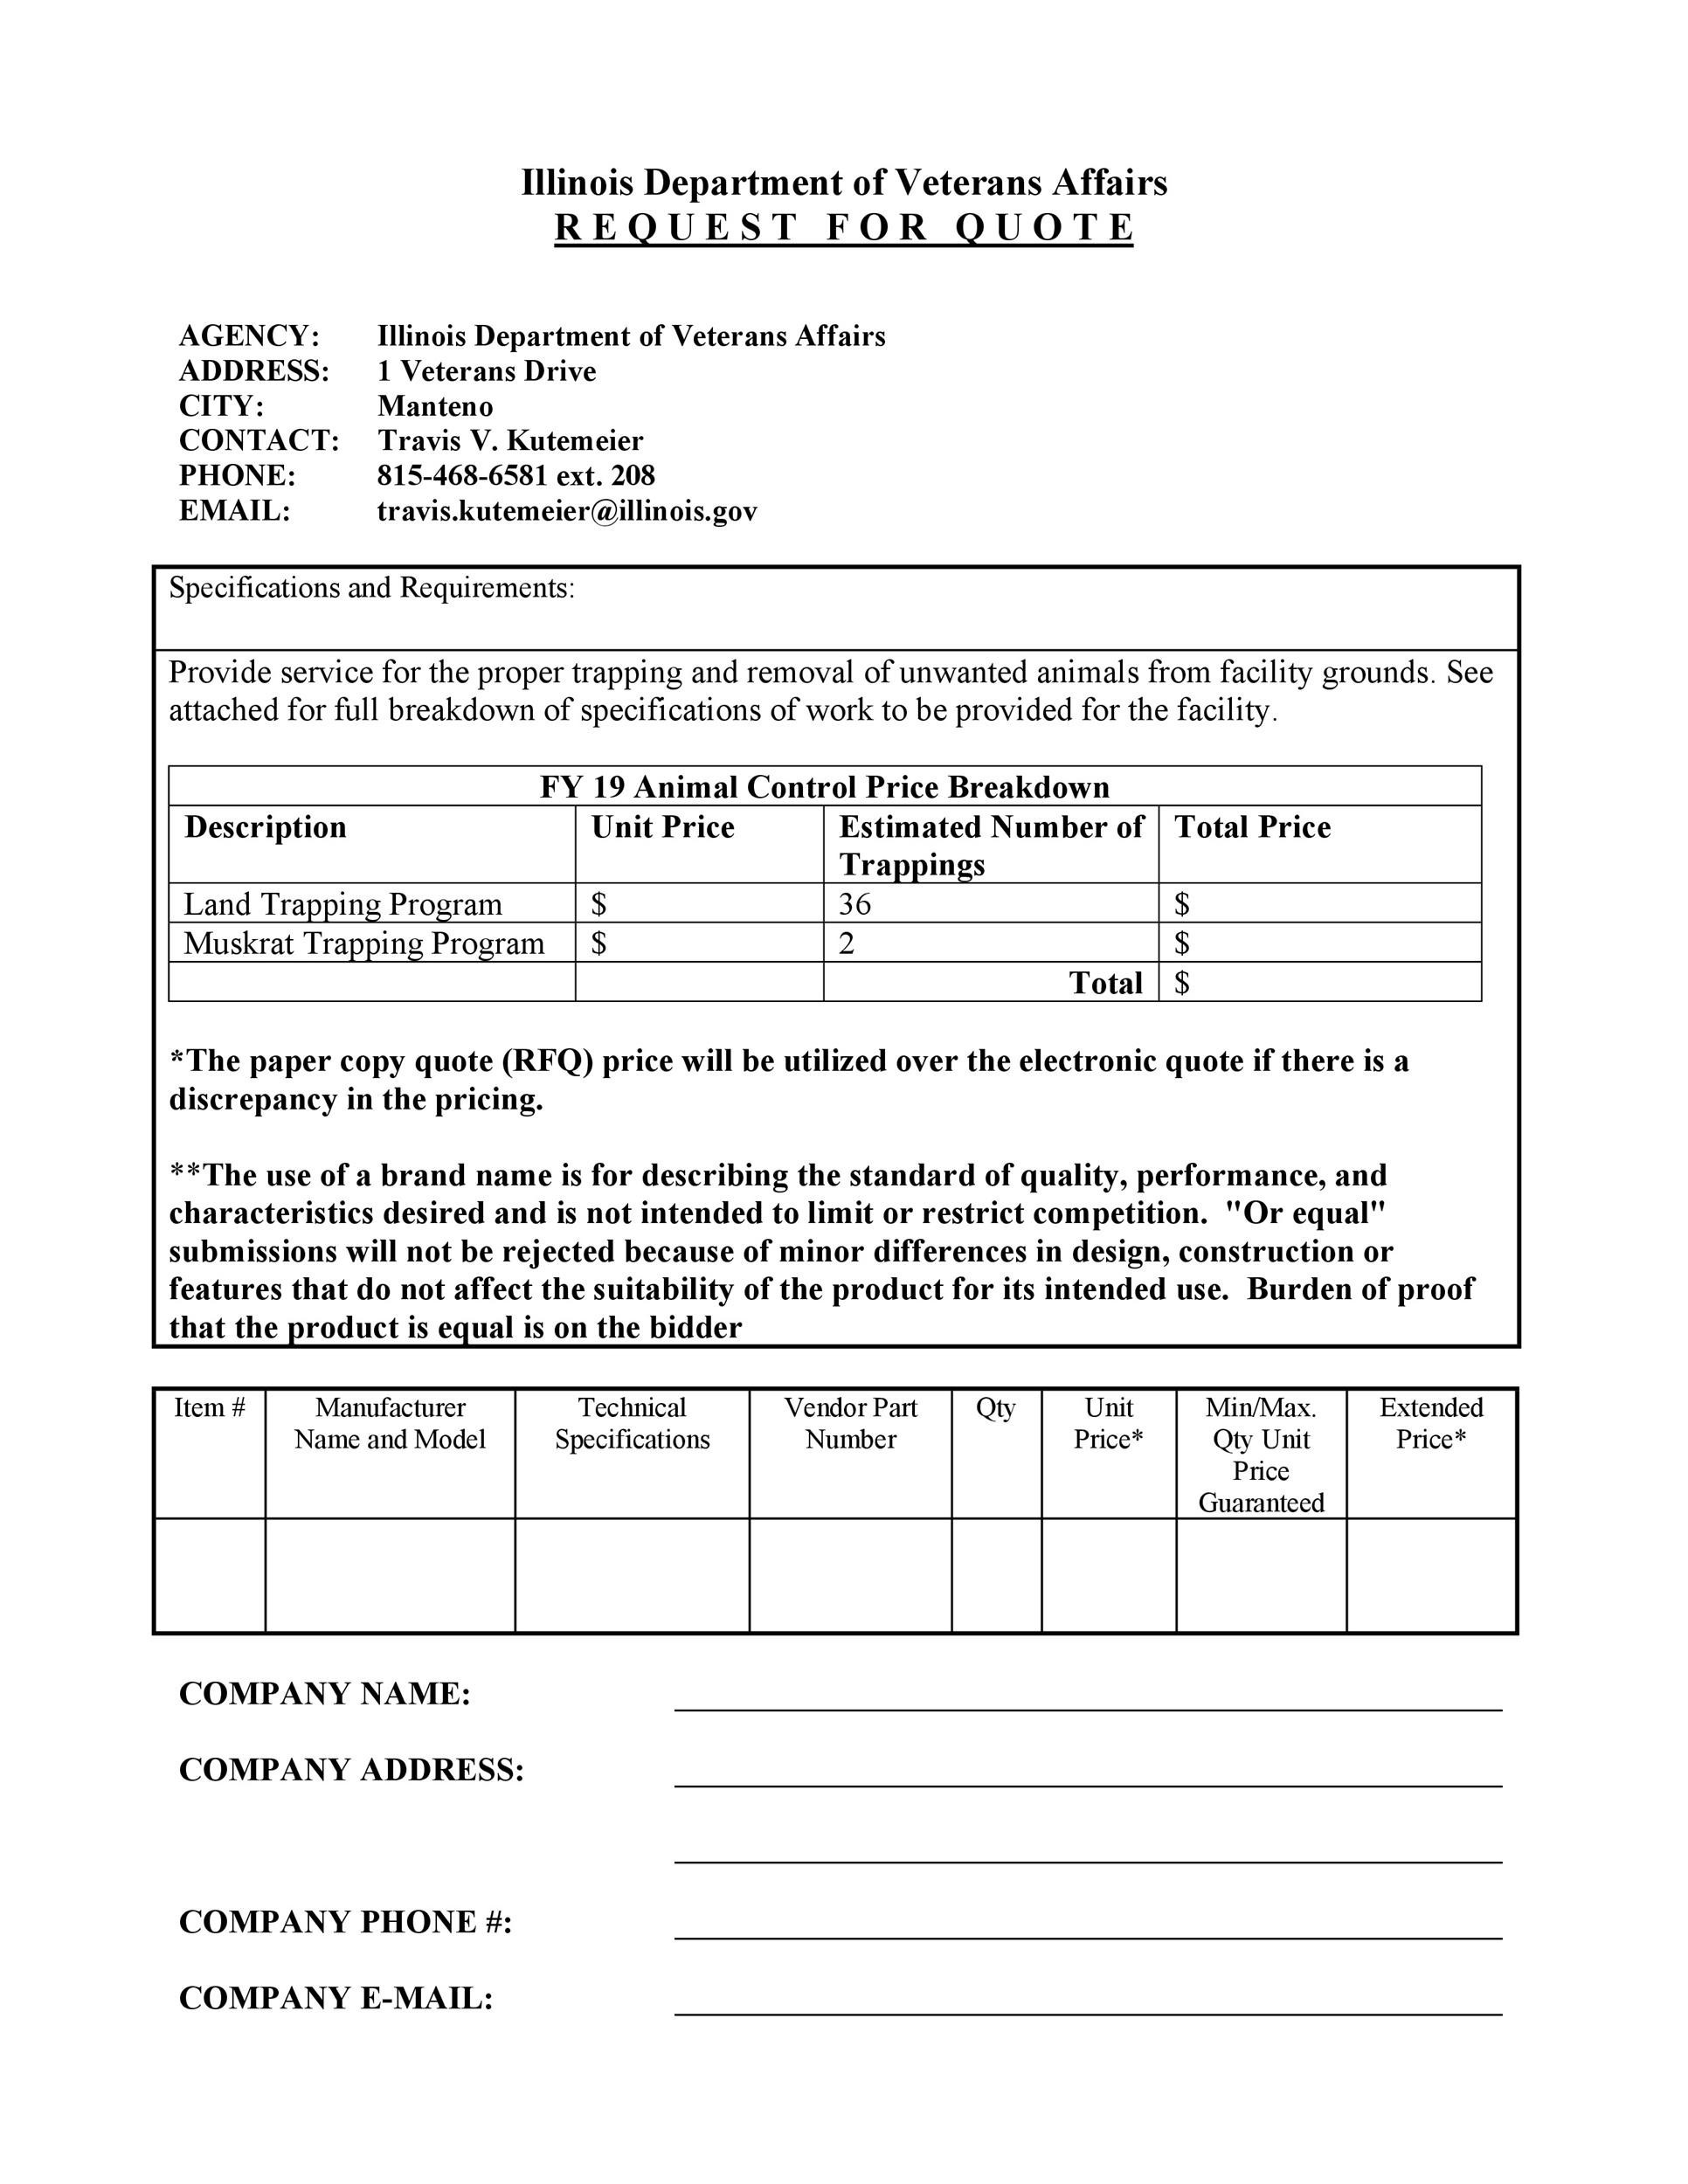 50 Simple Request For Quote Templates Amp Forms Templatelab